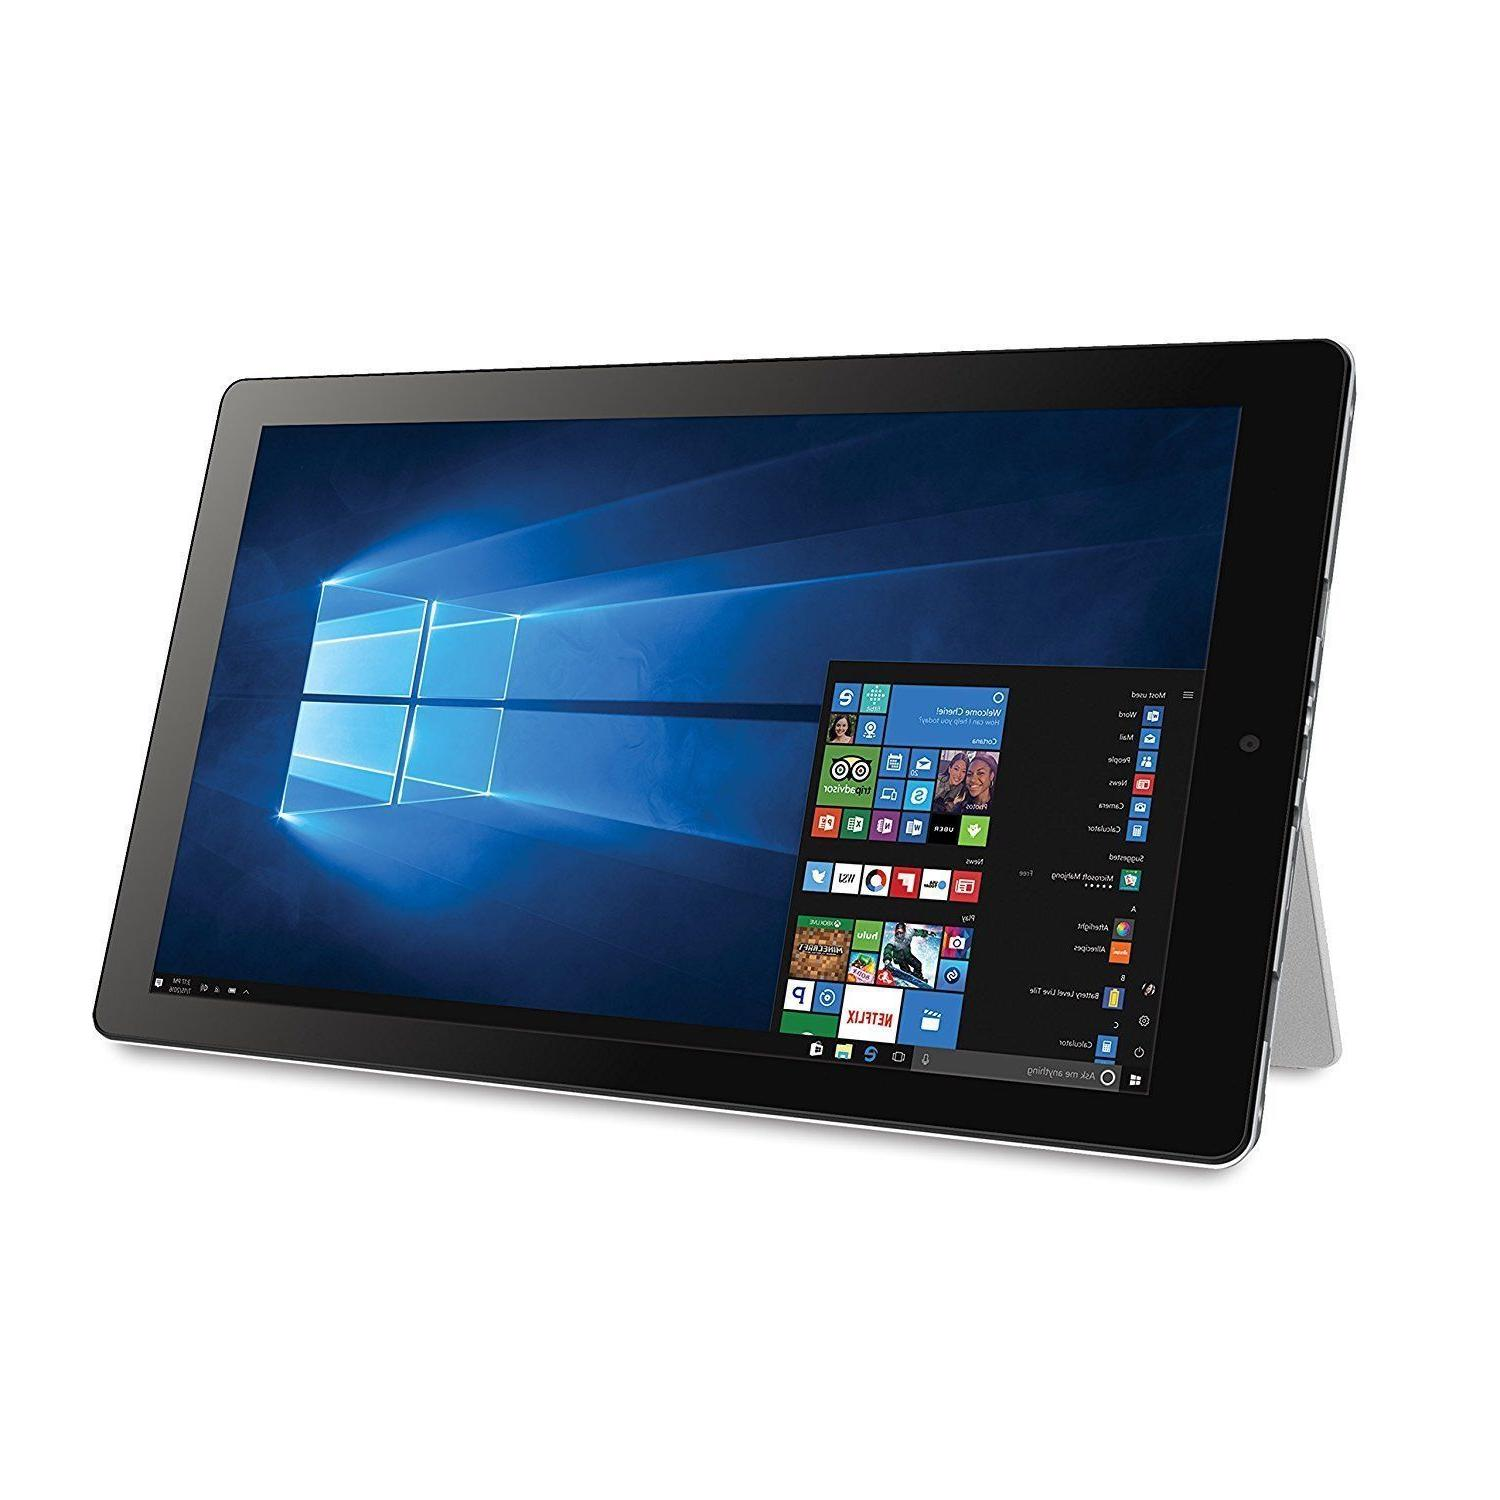 RCA Windows tablet with detachable and Free Office Mobile